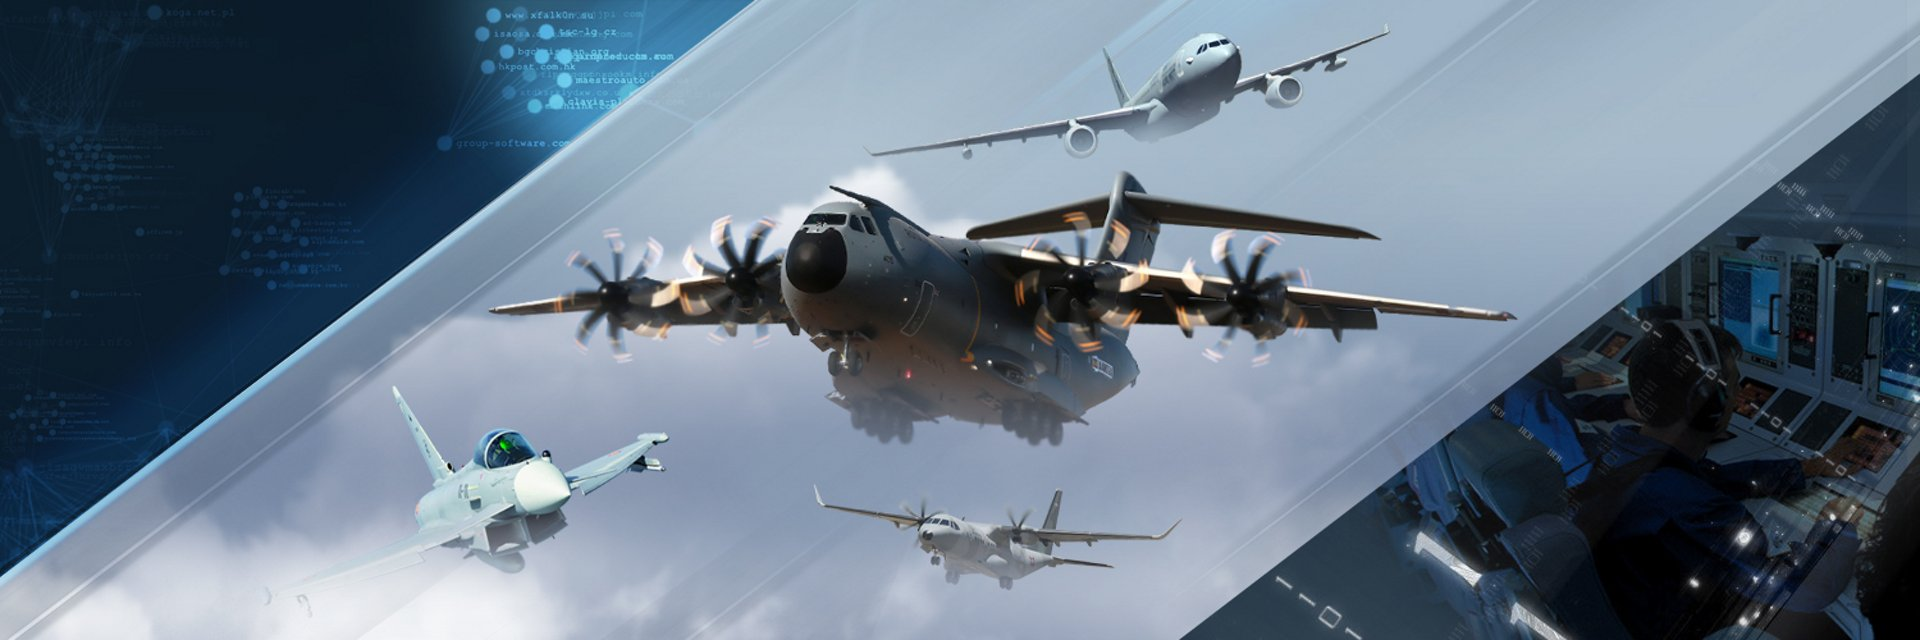 Airbus at International Defence and Security Exhibition (FEINDEF) 29 -31 May in Madrid